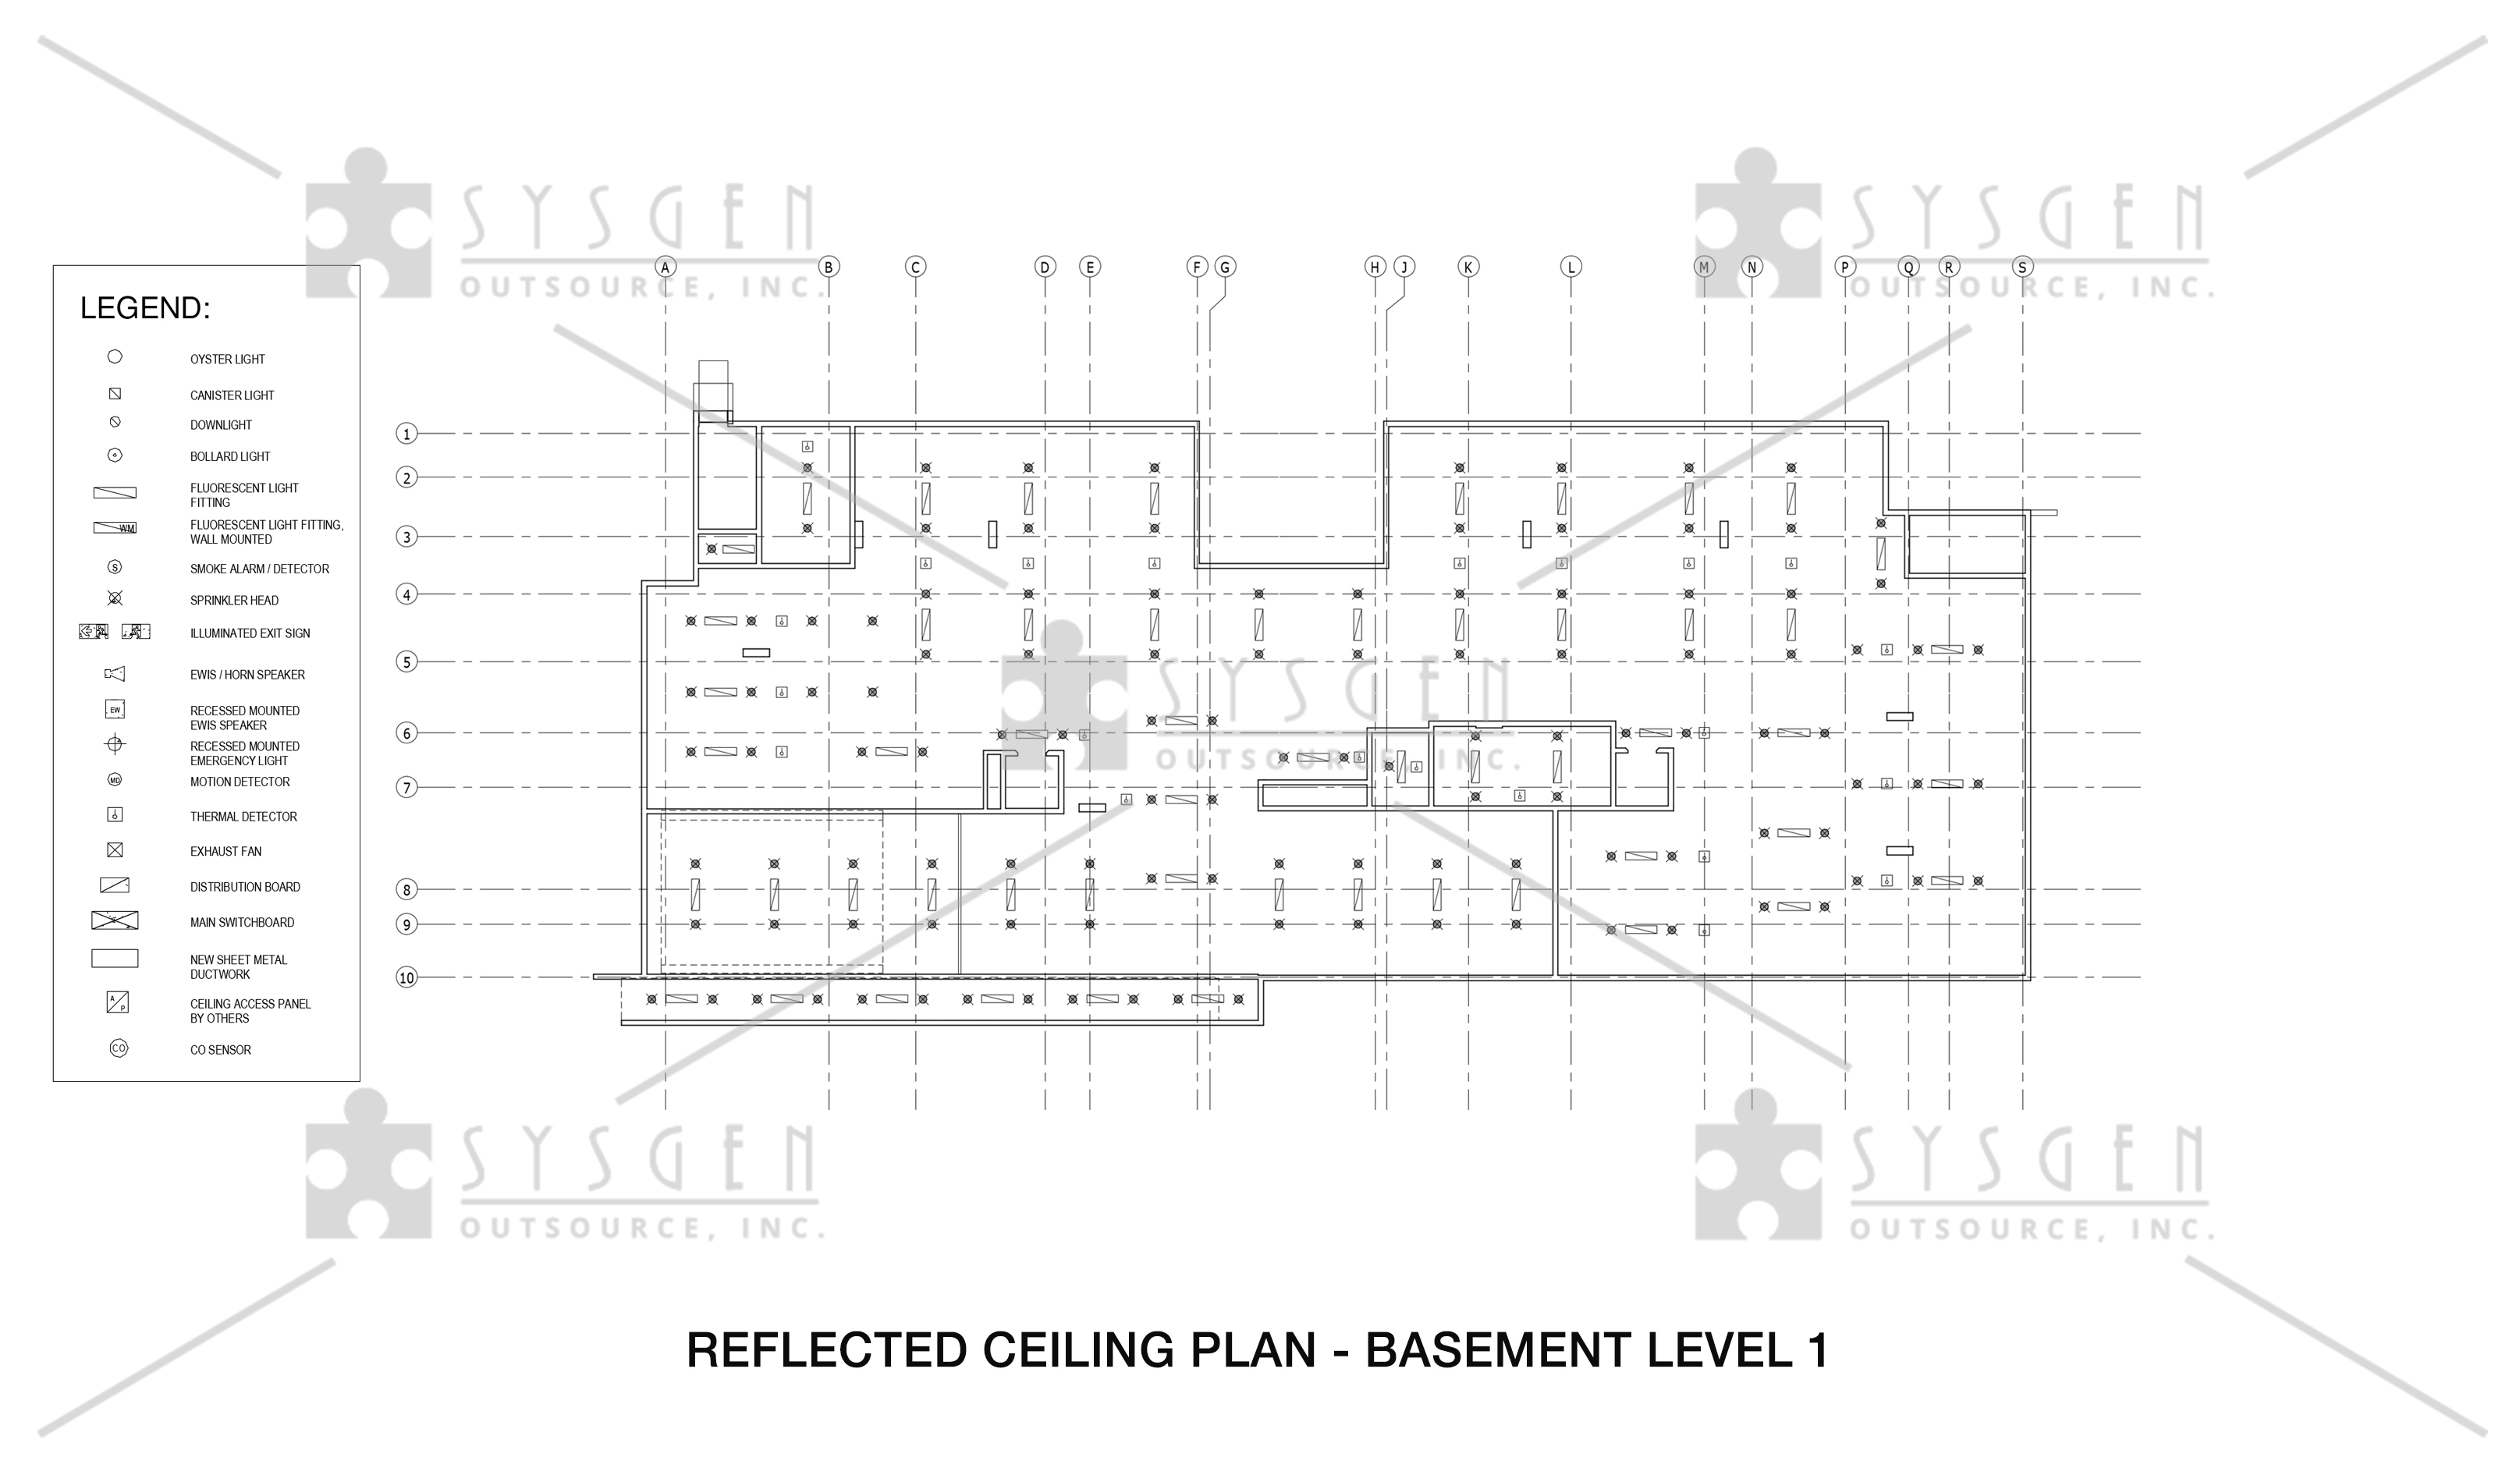 sysgen-outsource-cad-outsourcing-services-cad-conversion-revit-4-storey-residentialss25